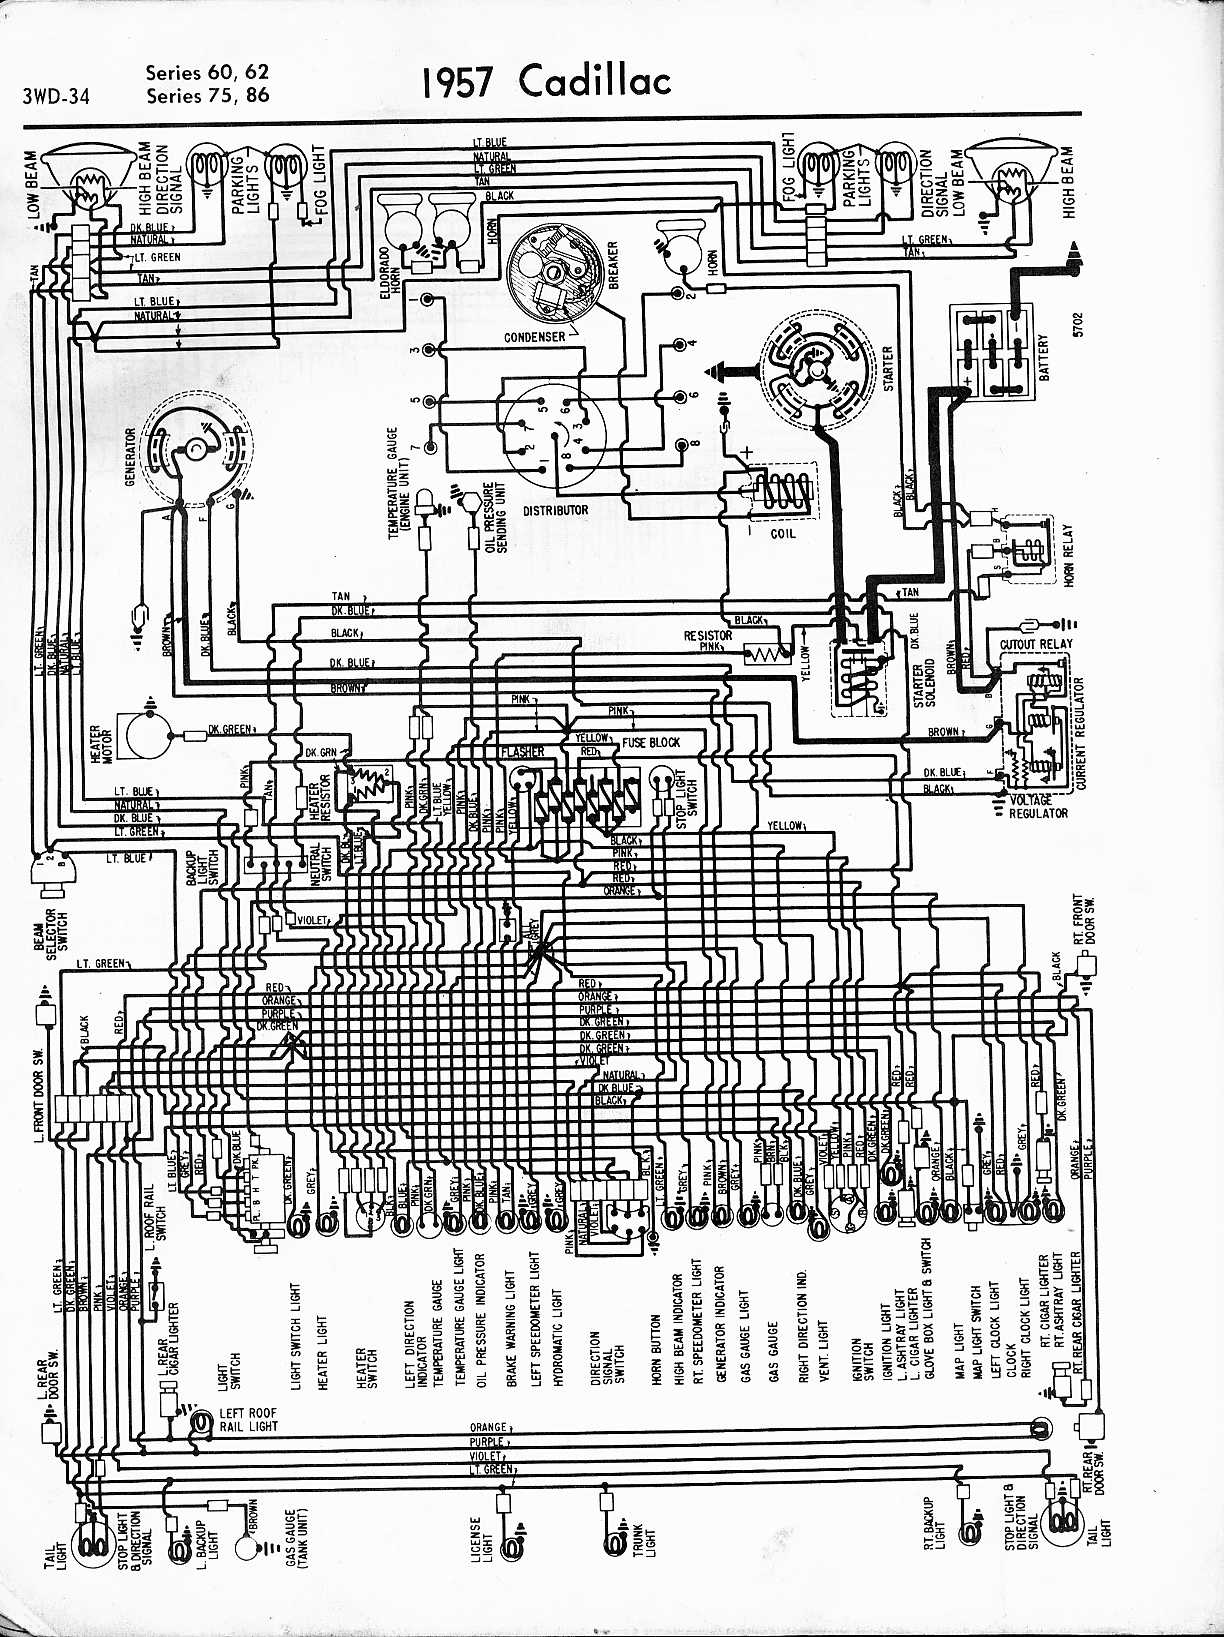 1956 cadillac steering diagram wiring schematic wiring diagram for rh prestonfarmmotors co